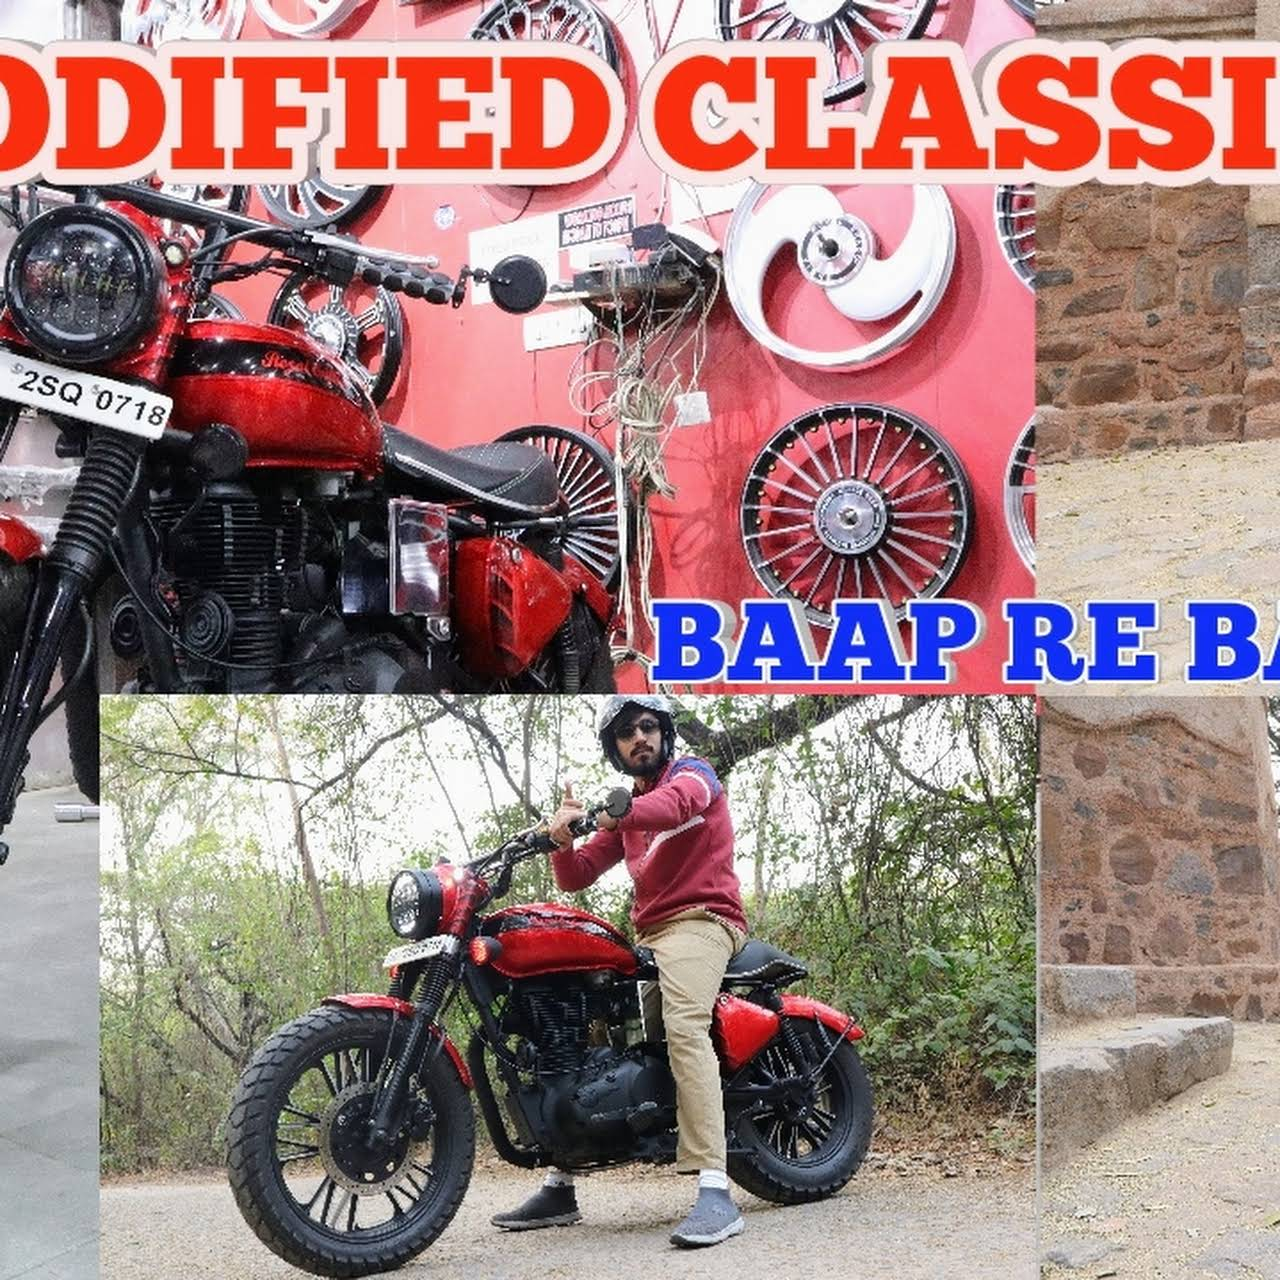 Royal Bullet Accessories World - WELCOME BIKE LOVERS     AT